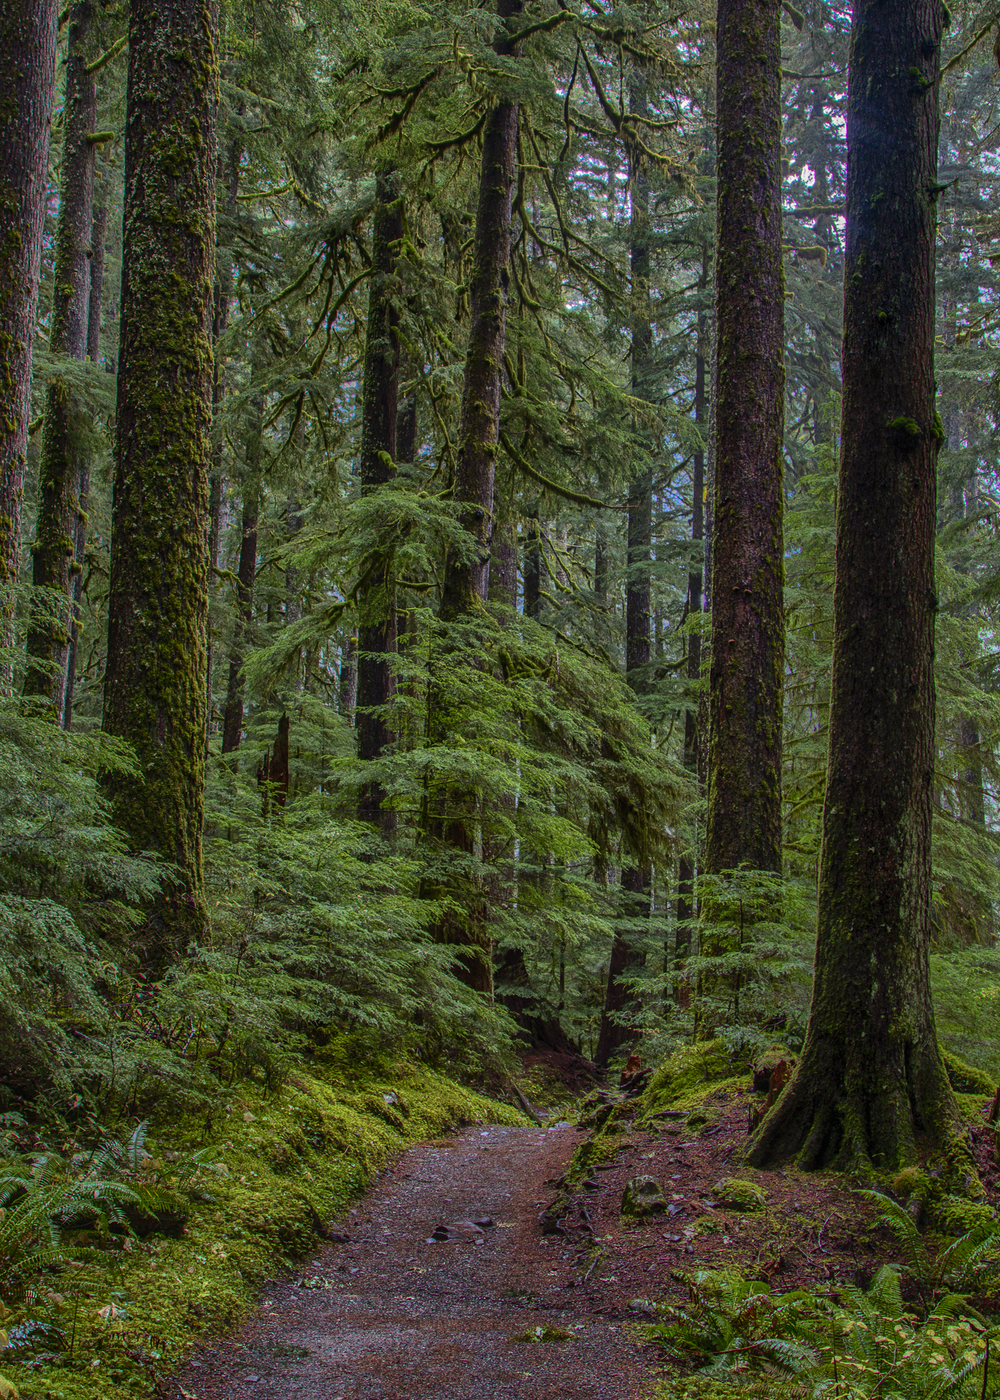 More amazing scenery along the Sol Duc Falls trail.